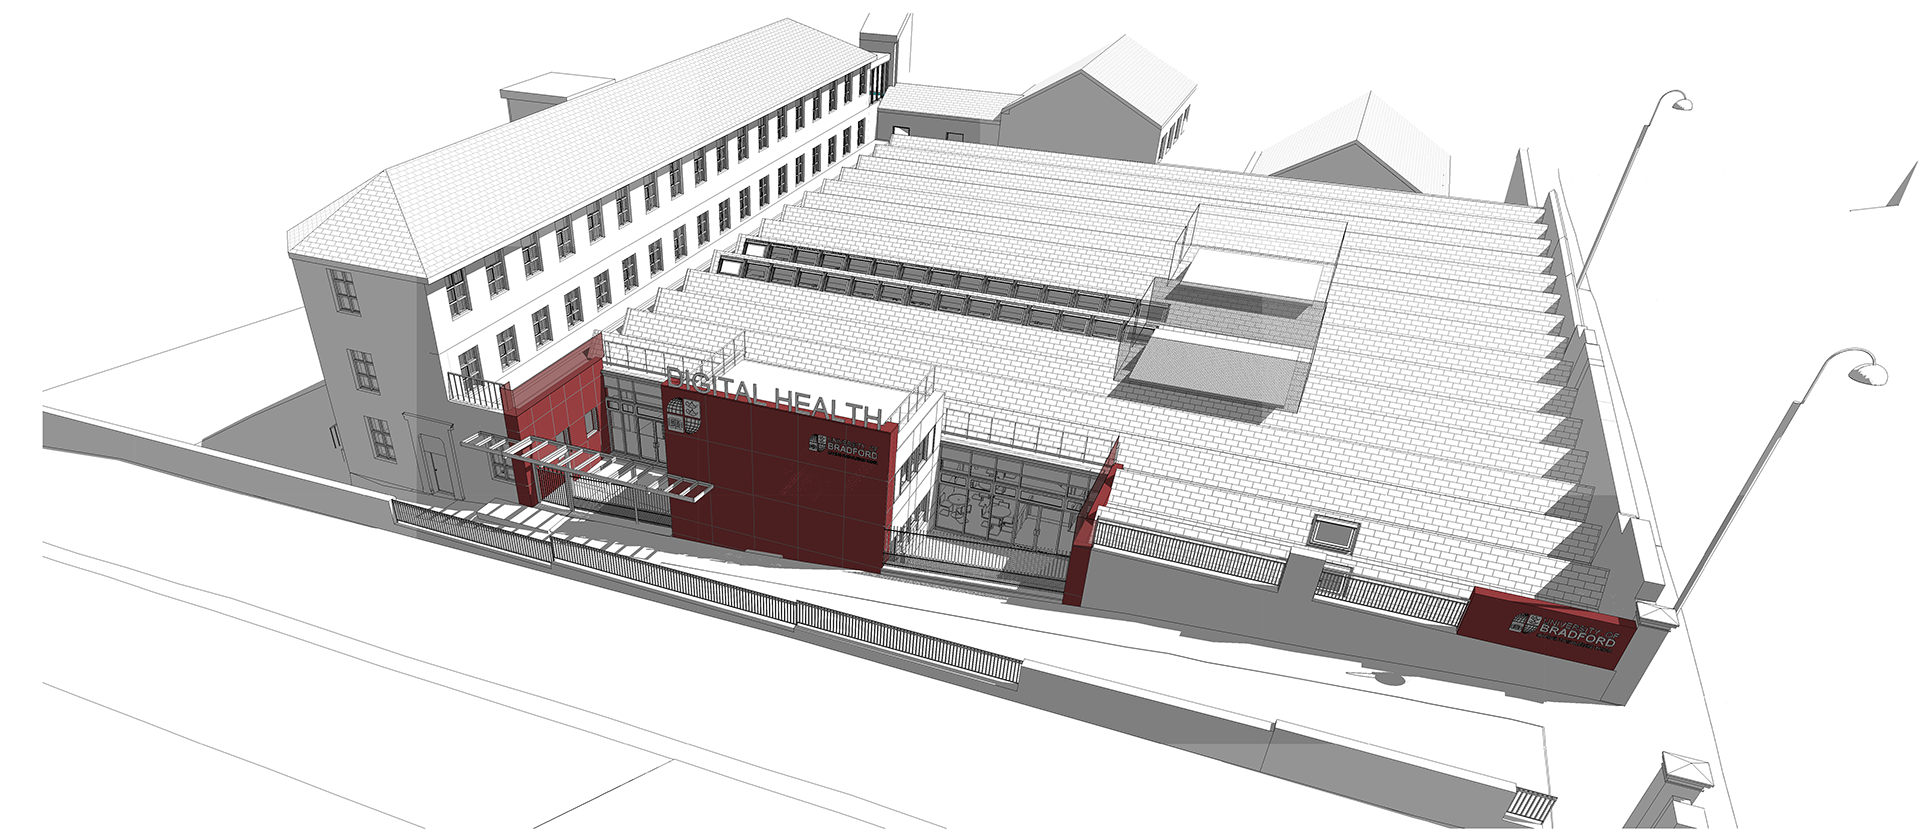 Digital Health Enterprise Zone Academic Building – Bradford